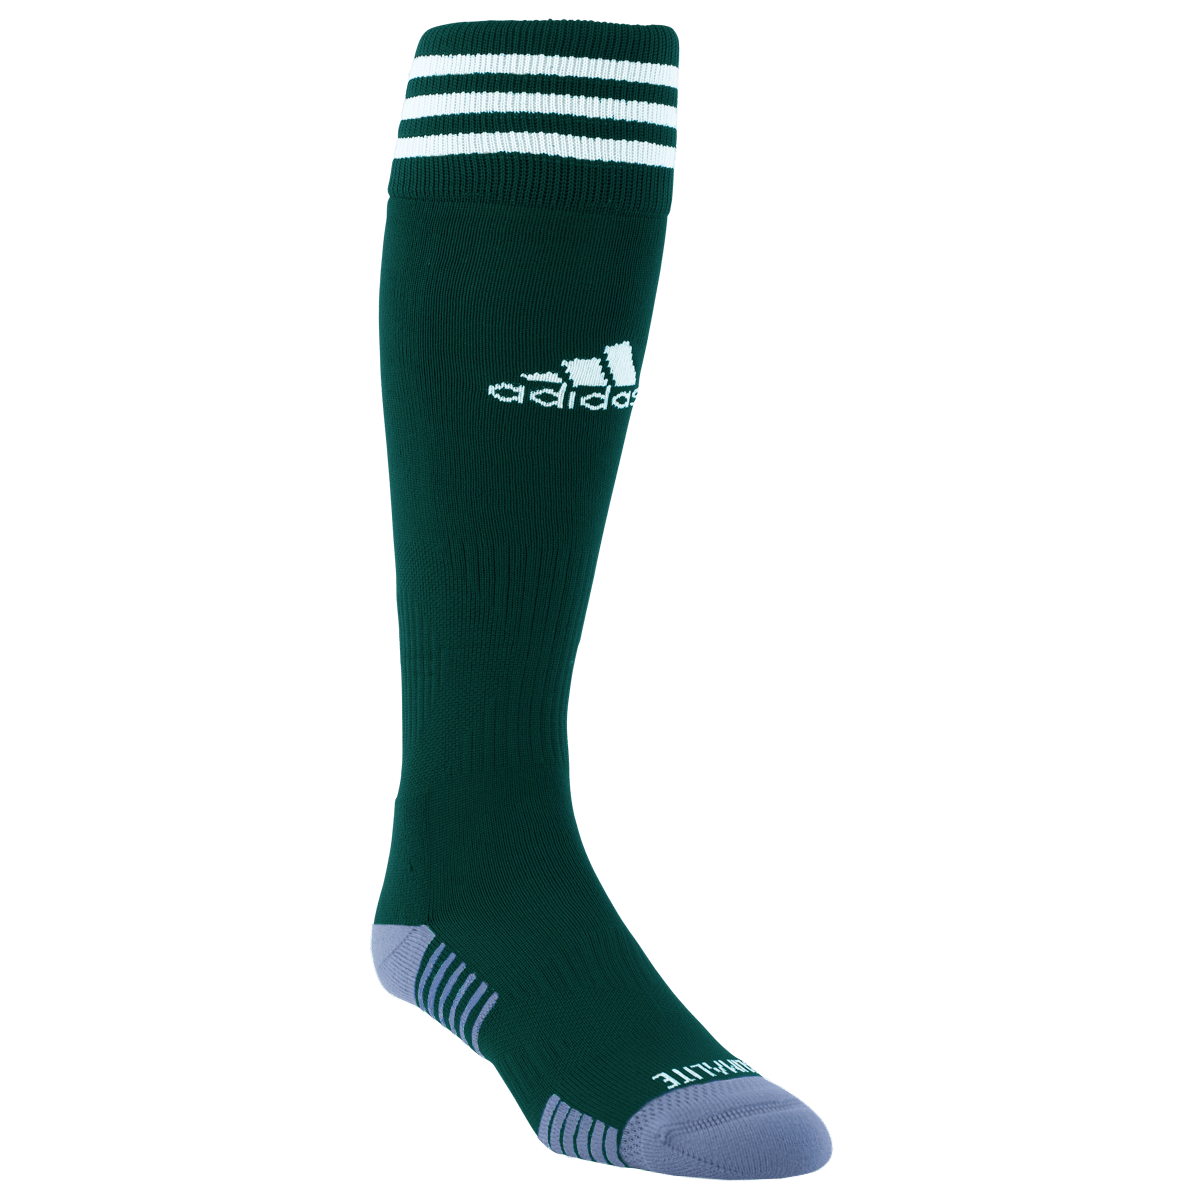 adidas Dark Green Copa Zone Cushion IV Socks